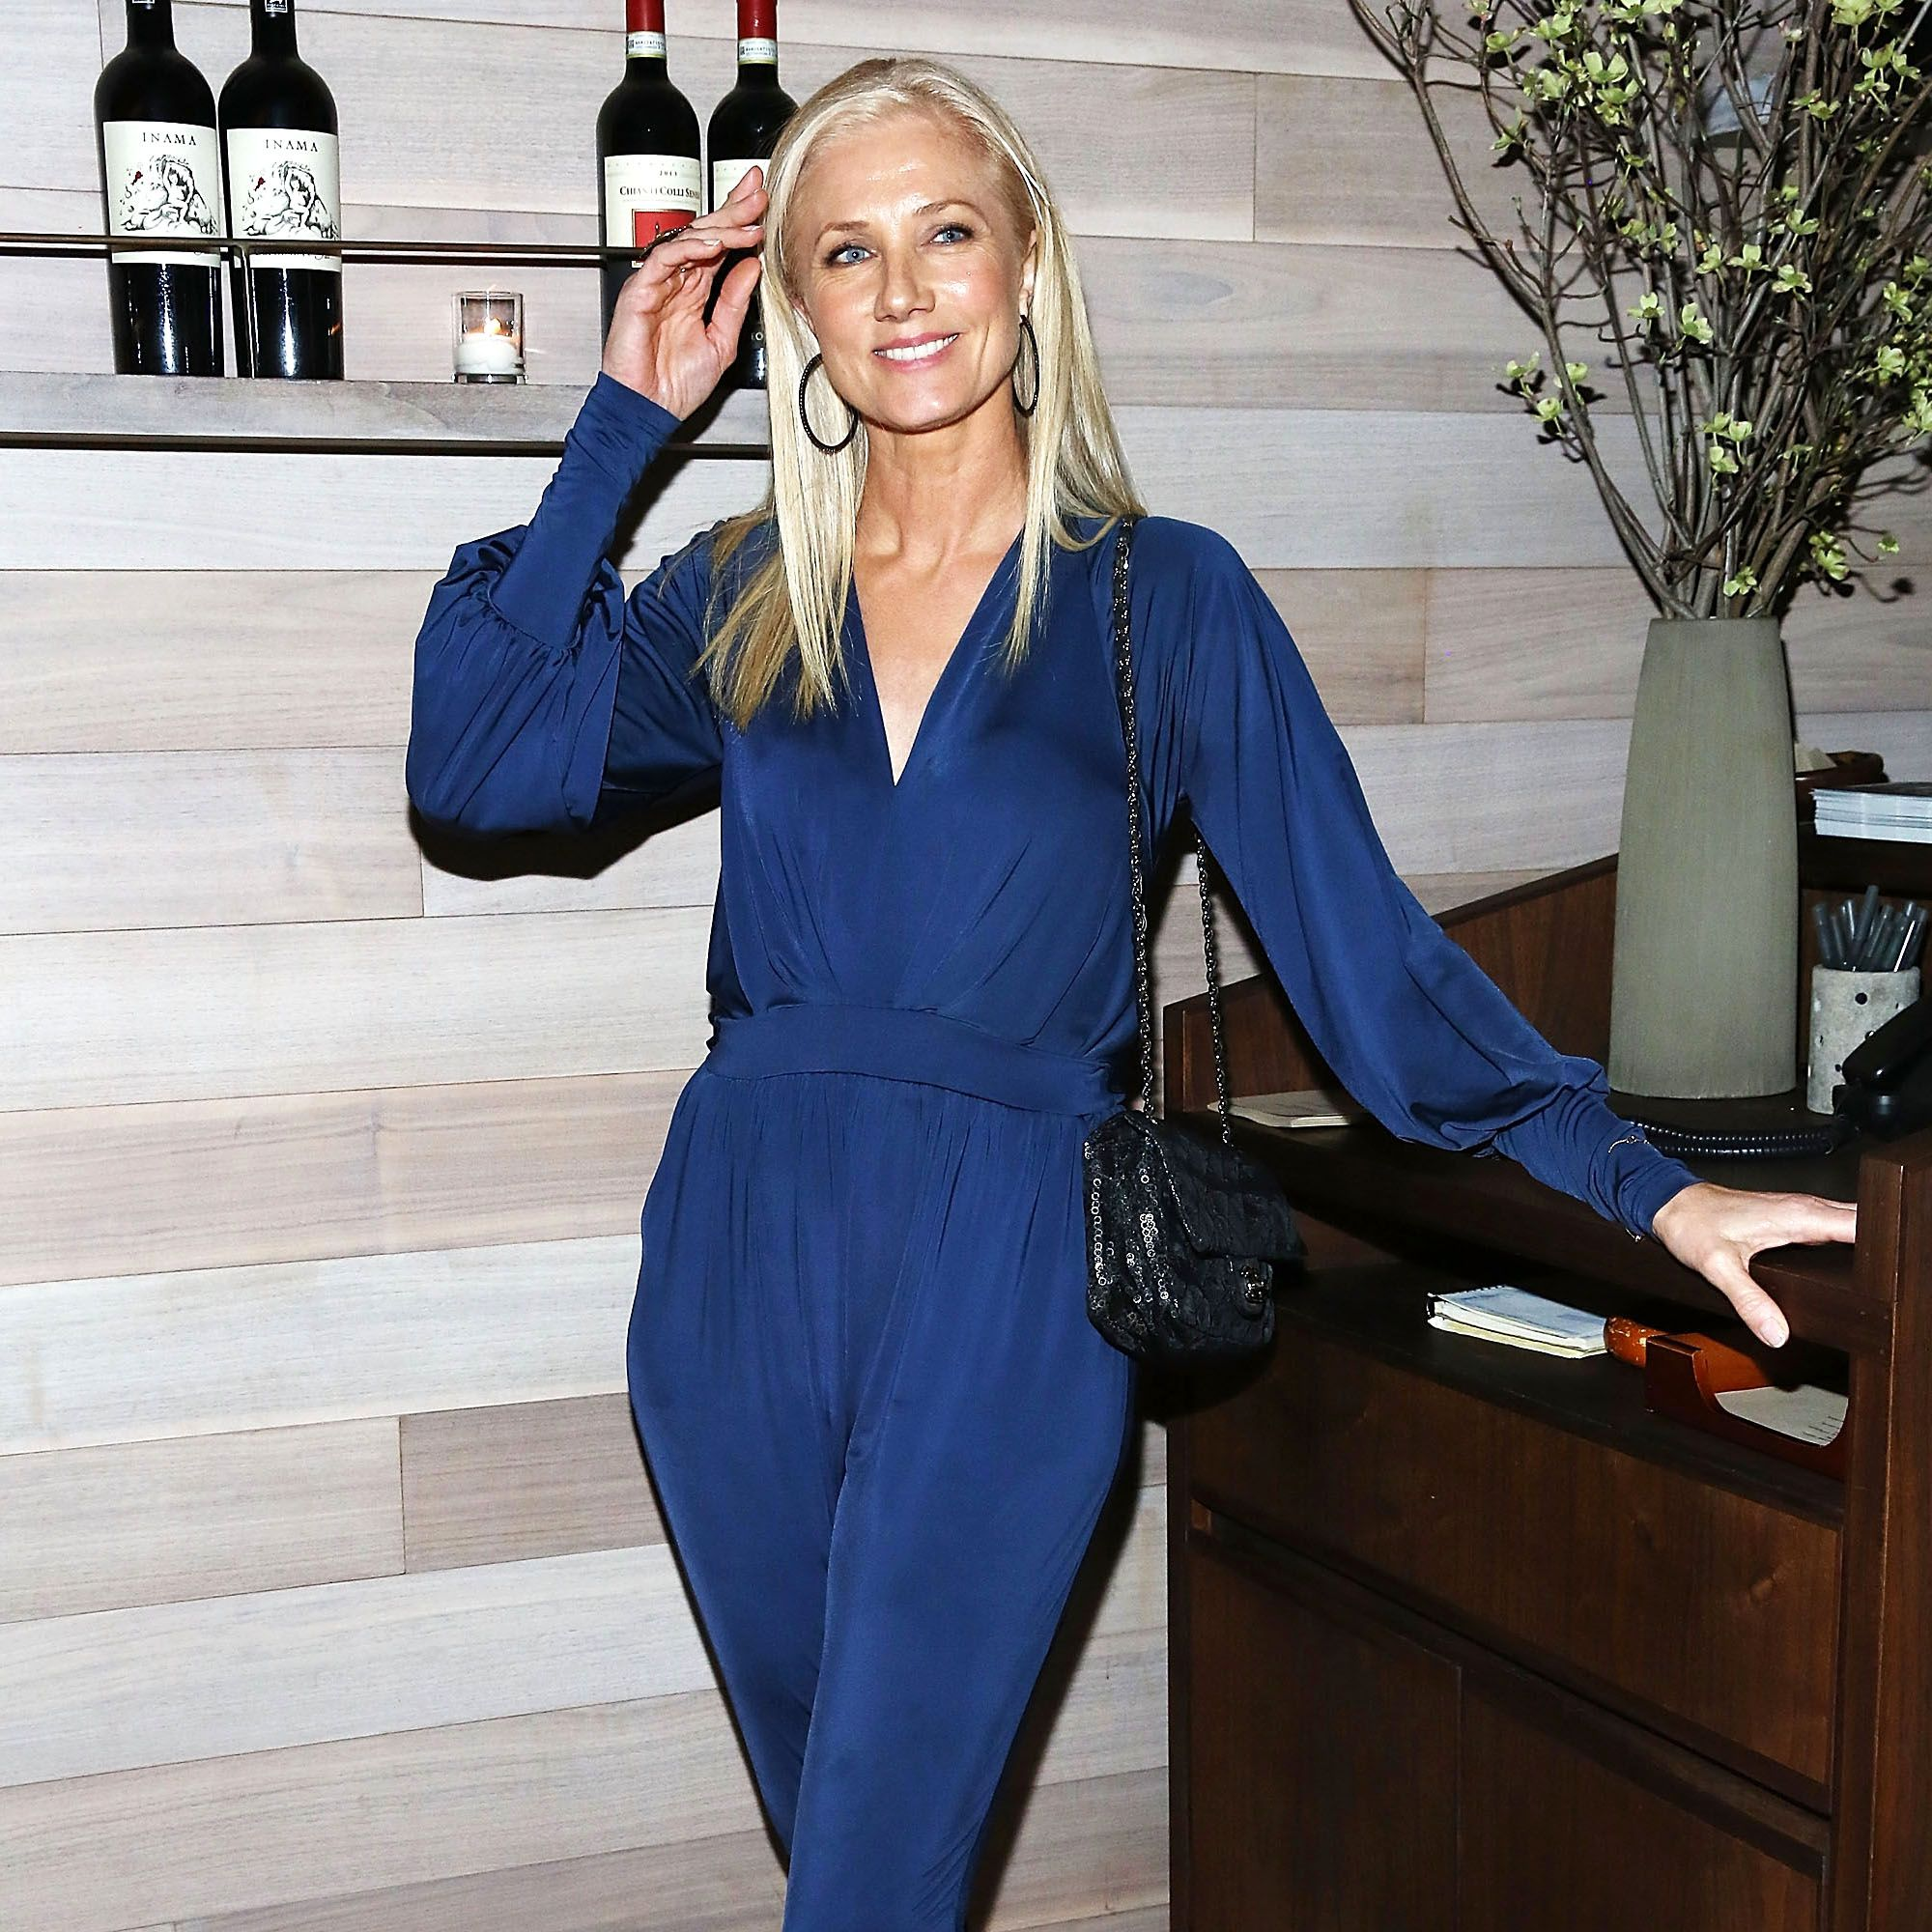 """NEW YORK, NY - APRIL 22:  Joely Richardson attends Lionsgate &amp&#x3B; Roadside attractions after party for the Tribeca Film Festival world premiere of """"Maggie"""" at Tutto II Giorno on April 22, 2015 in New York City.  (Photo by Astrid Stawiarz/Getty Images)"""